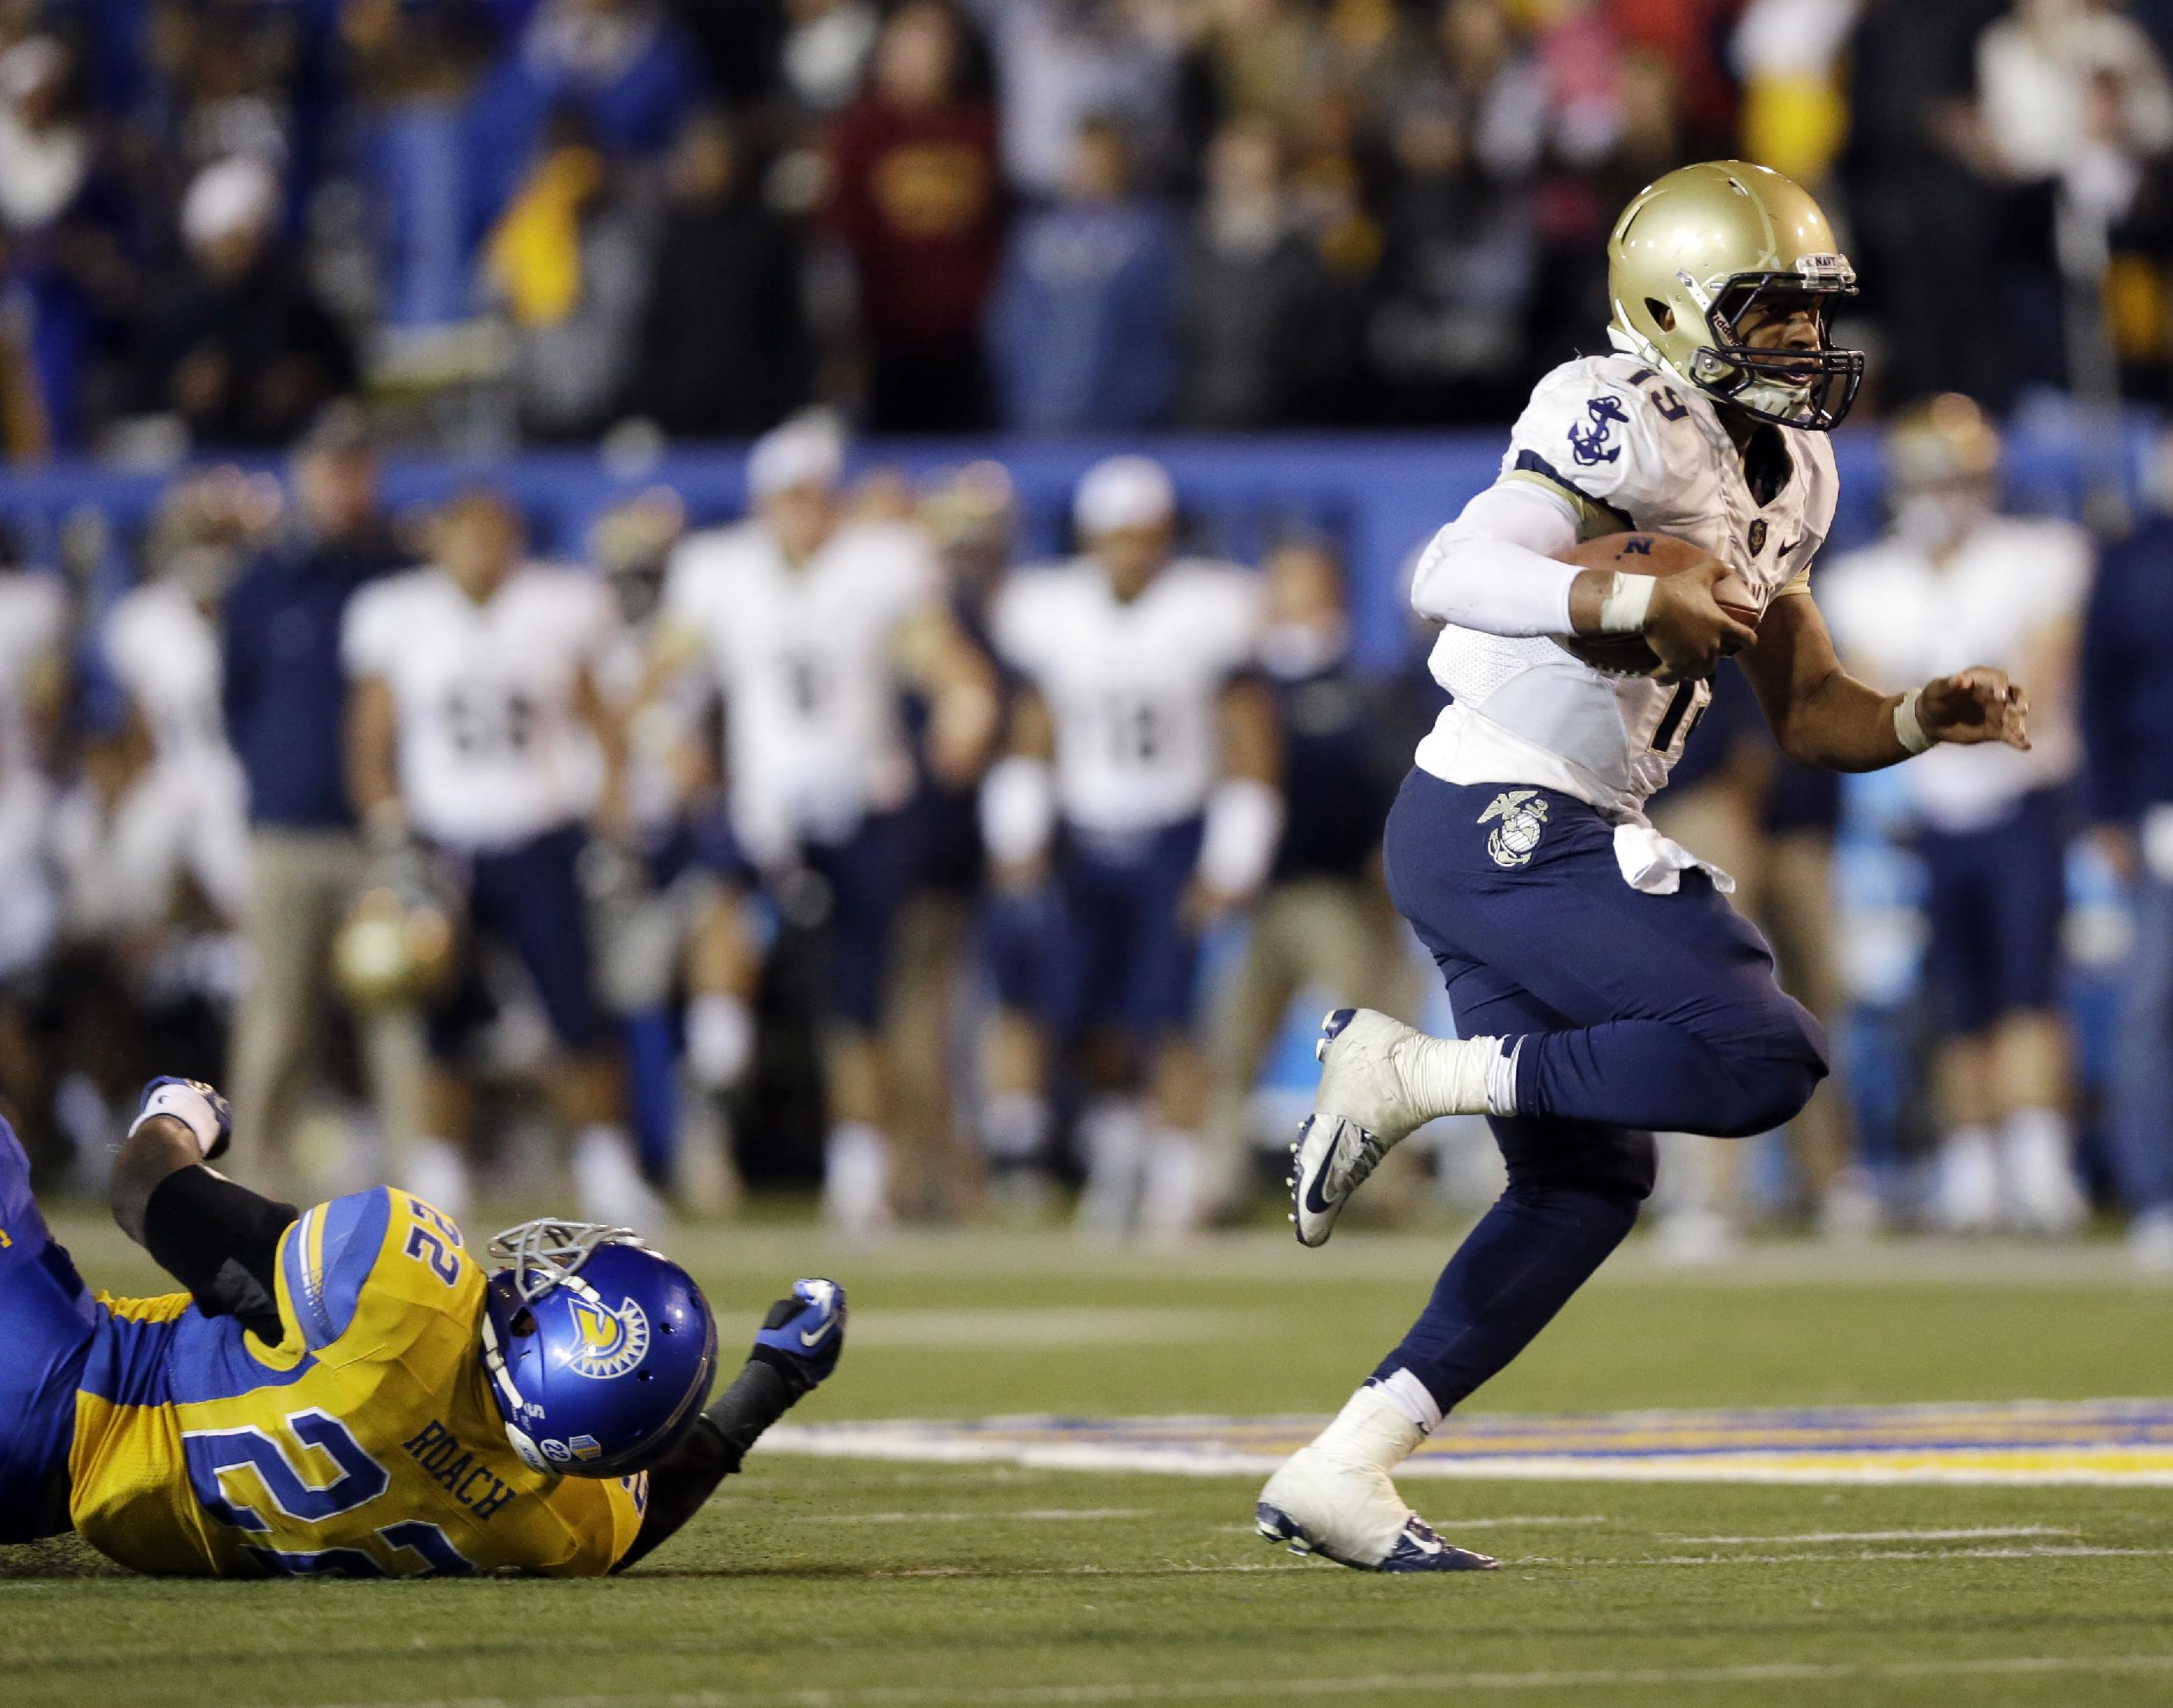 Navy quarterback Keenan Reynolds, right, runs past San Jose State linebacker Hector Roach (22) for a touchdown during the first overtime of an NCAA college football game on Friday, Nov. 22, 2013, in San Jose, Calif.  Navy won 58-52 in triple overtime